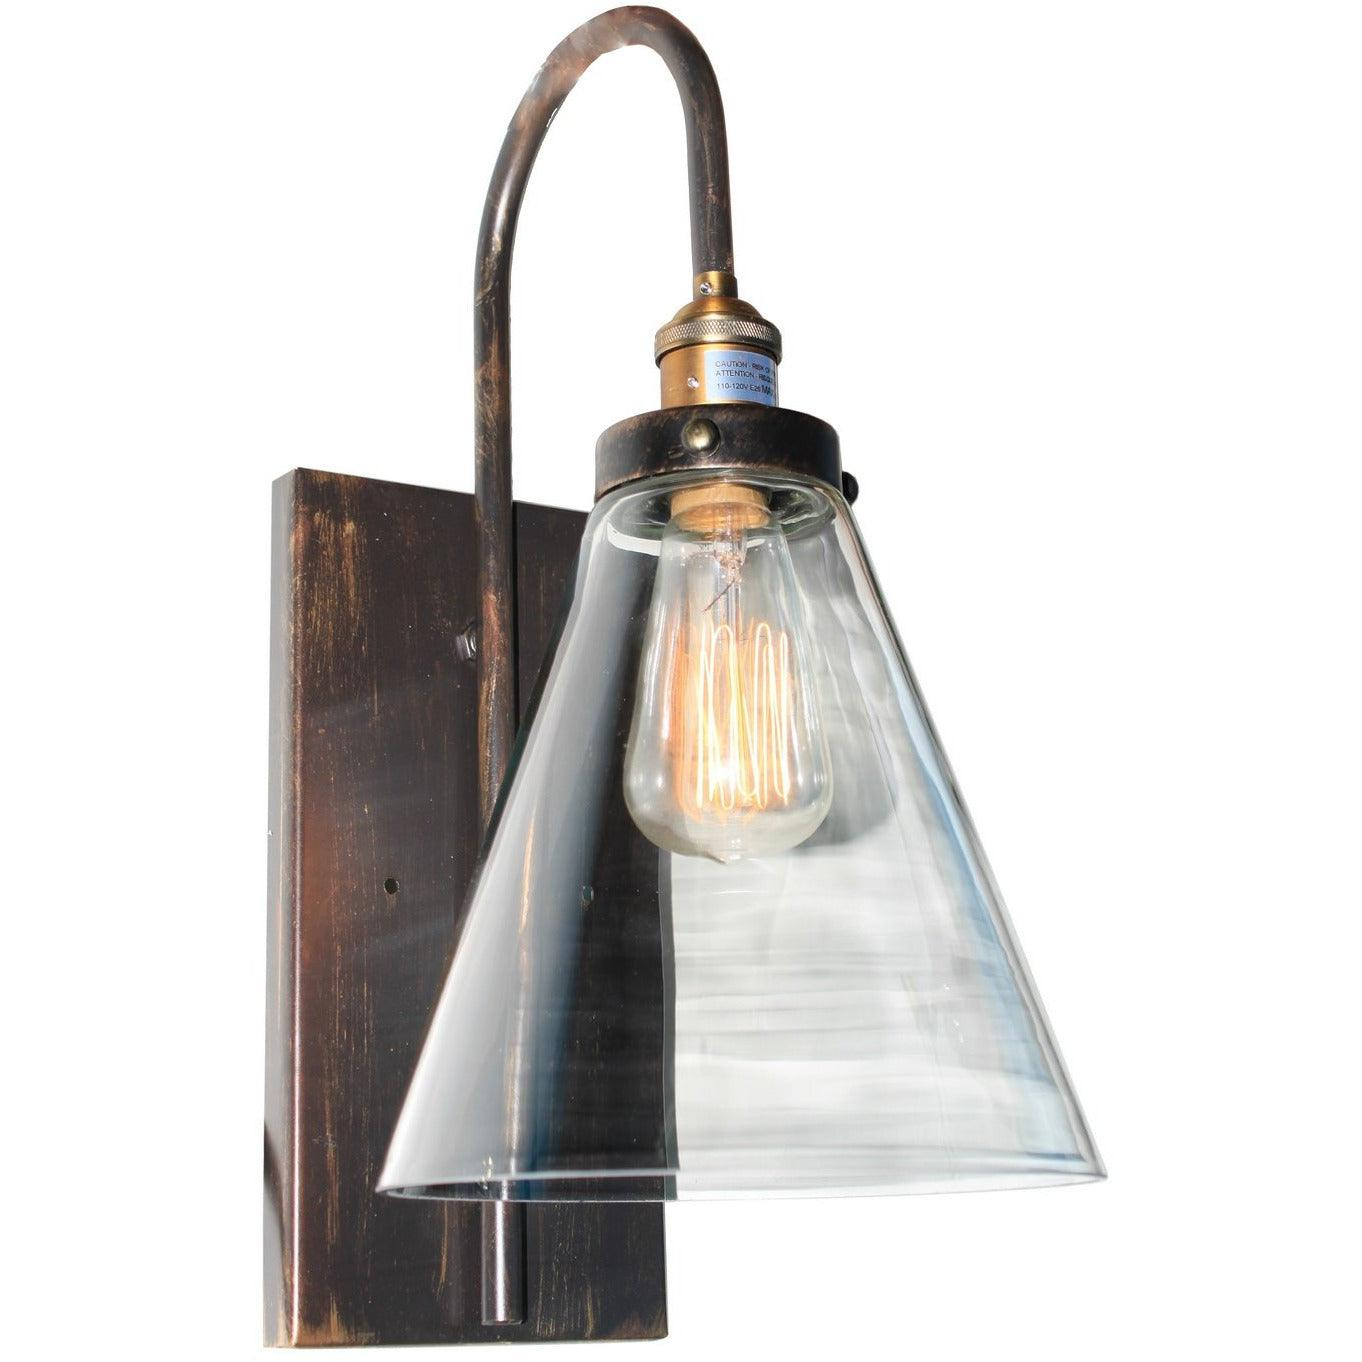 Artcraft Lighting - AC10169 - One Light Wall Sconce - Greenwich - Bronze & Copper